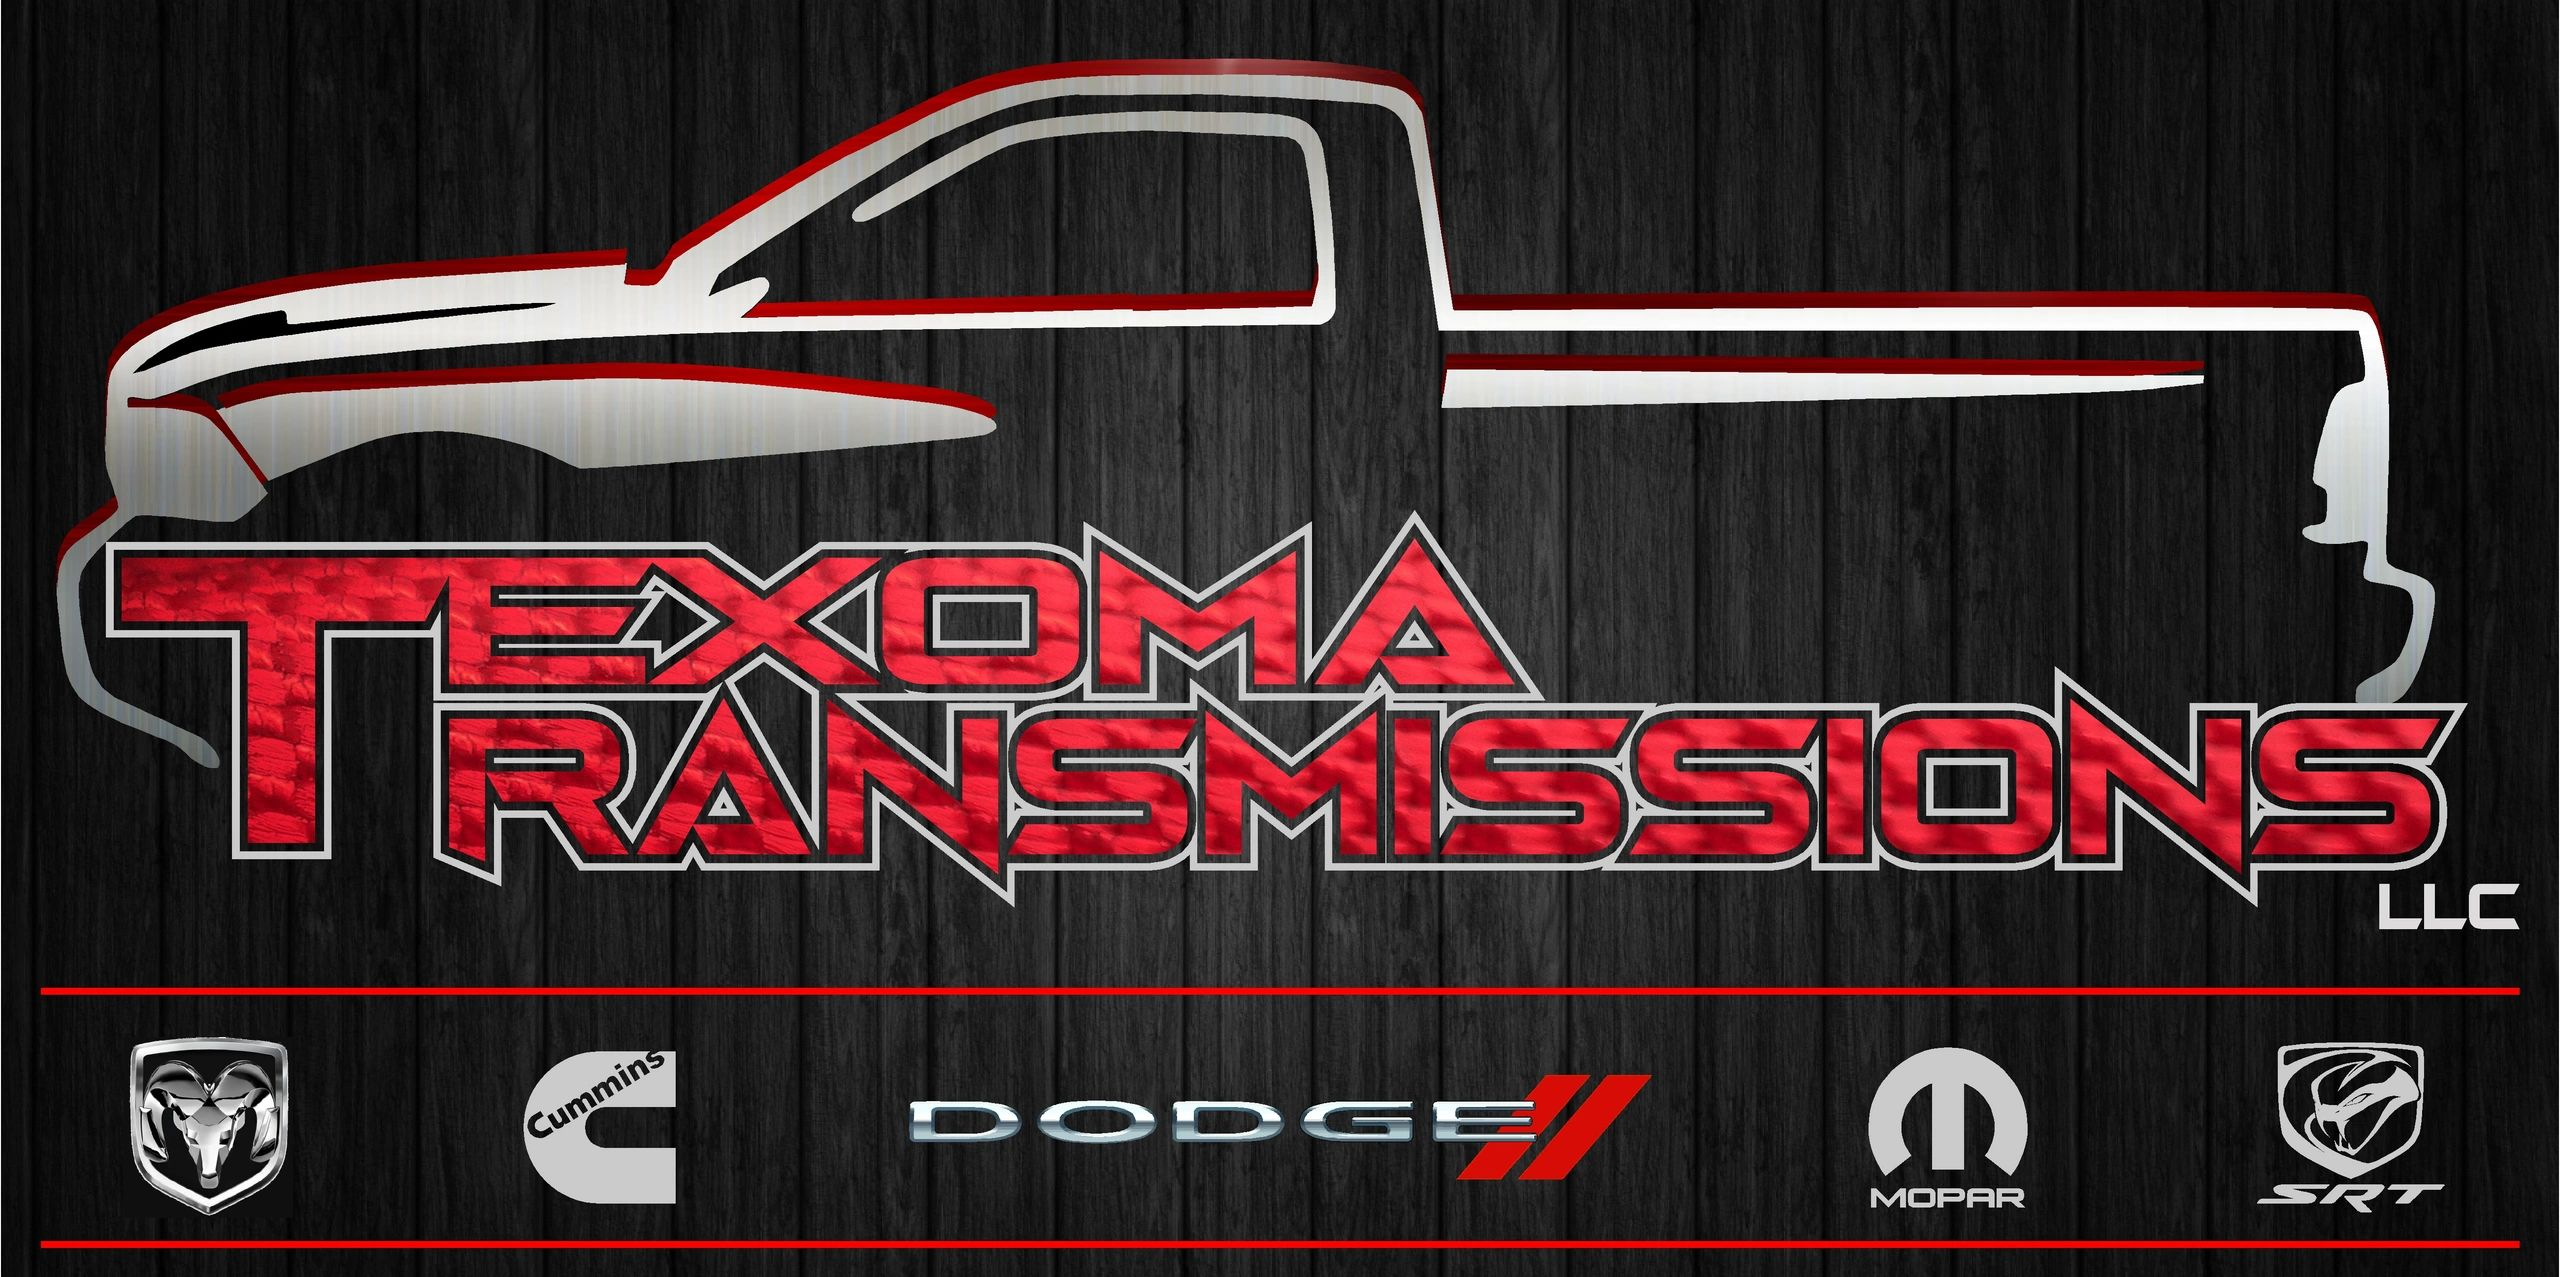 Rebuild Services | Texoma Transmissions